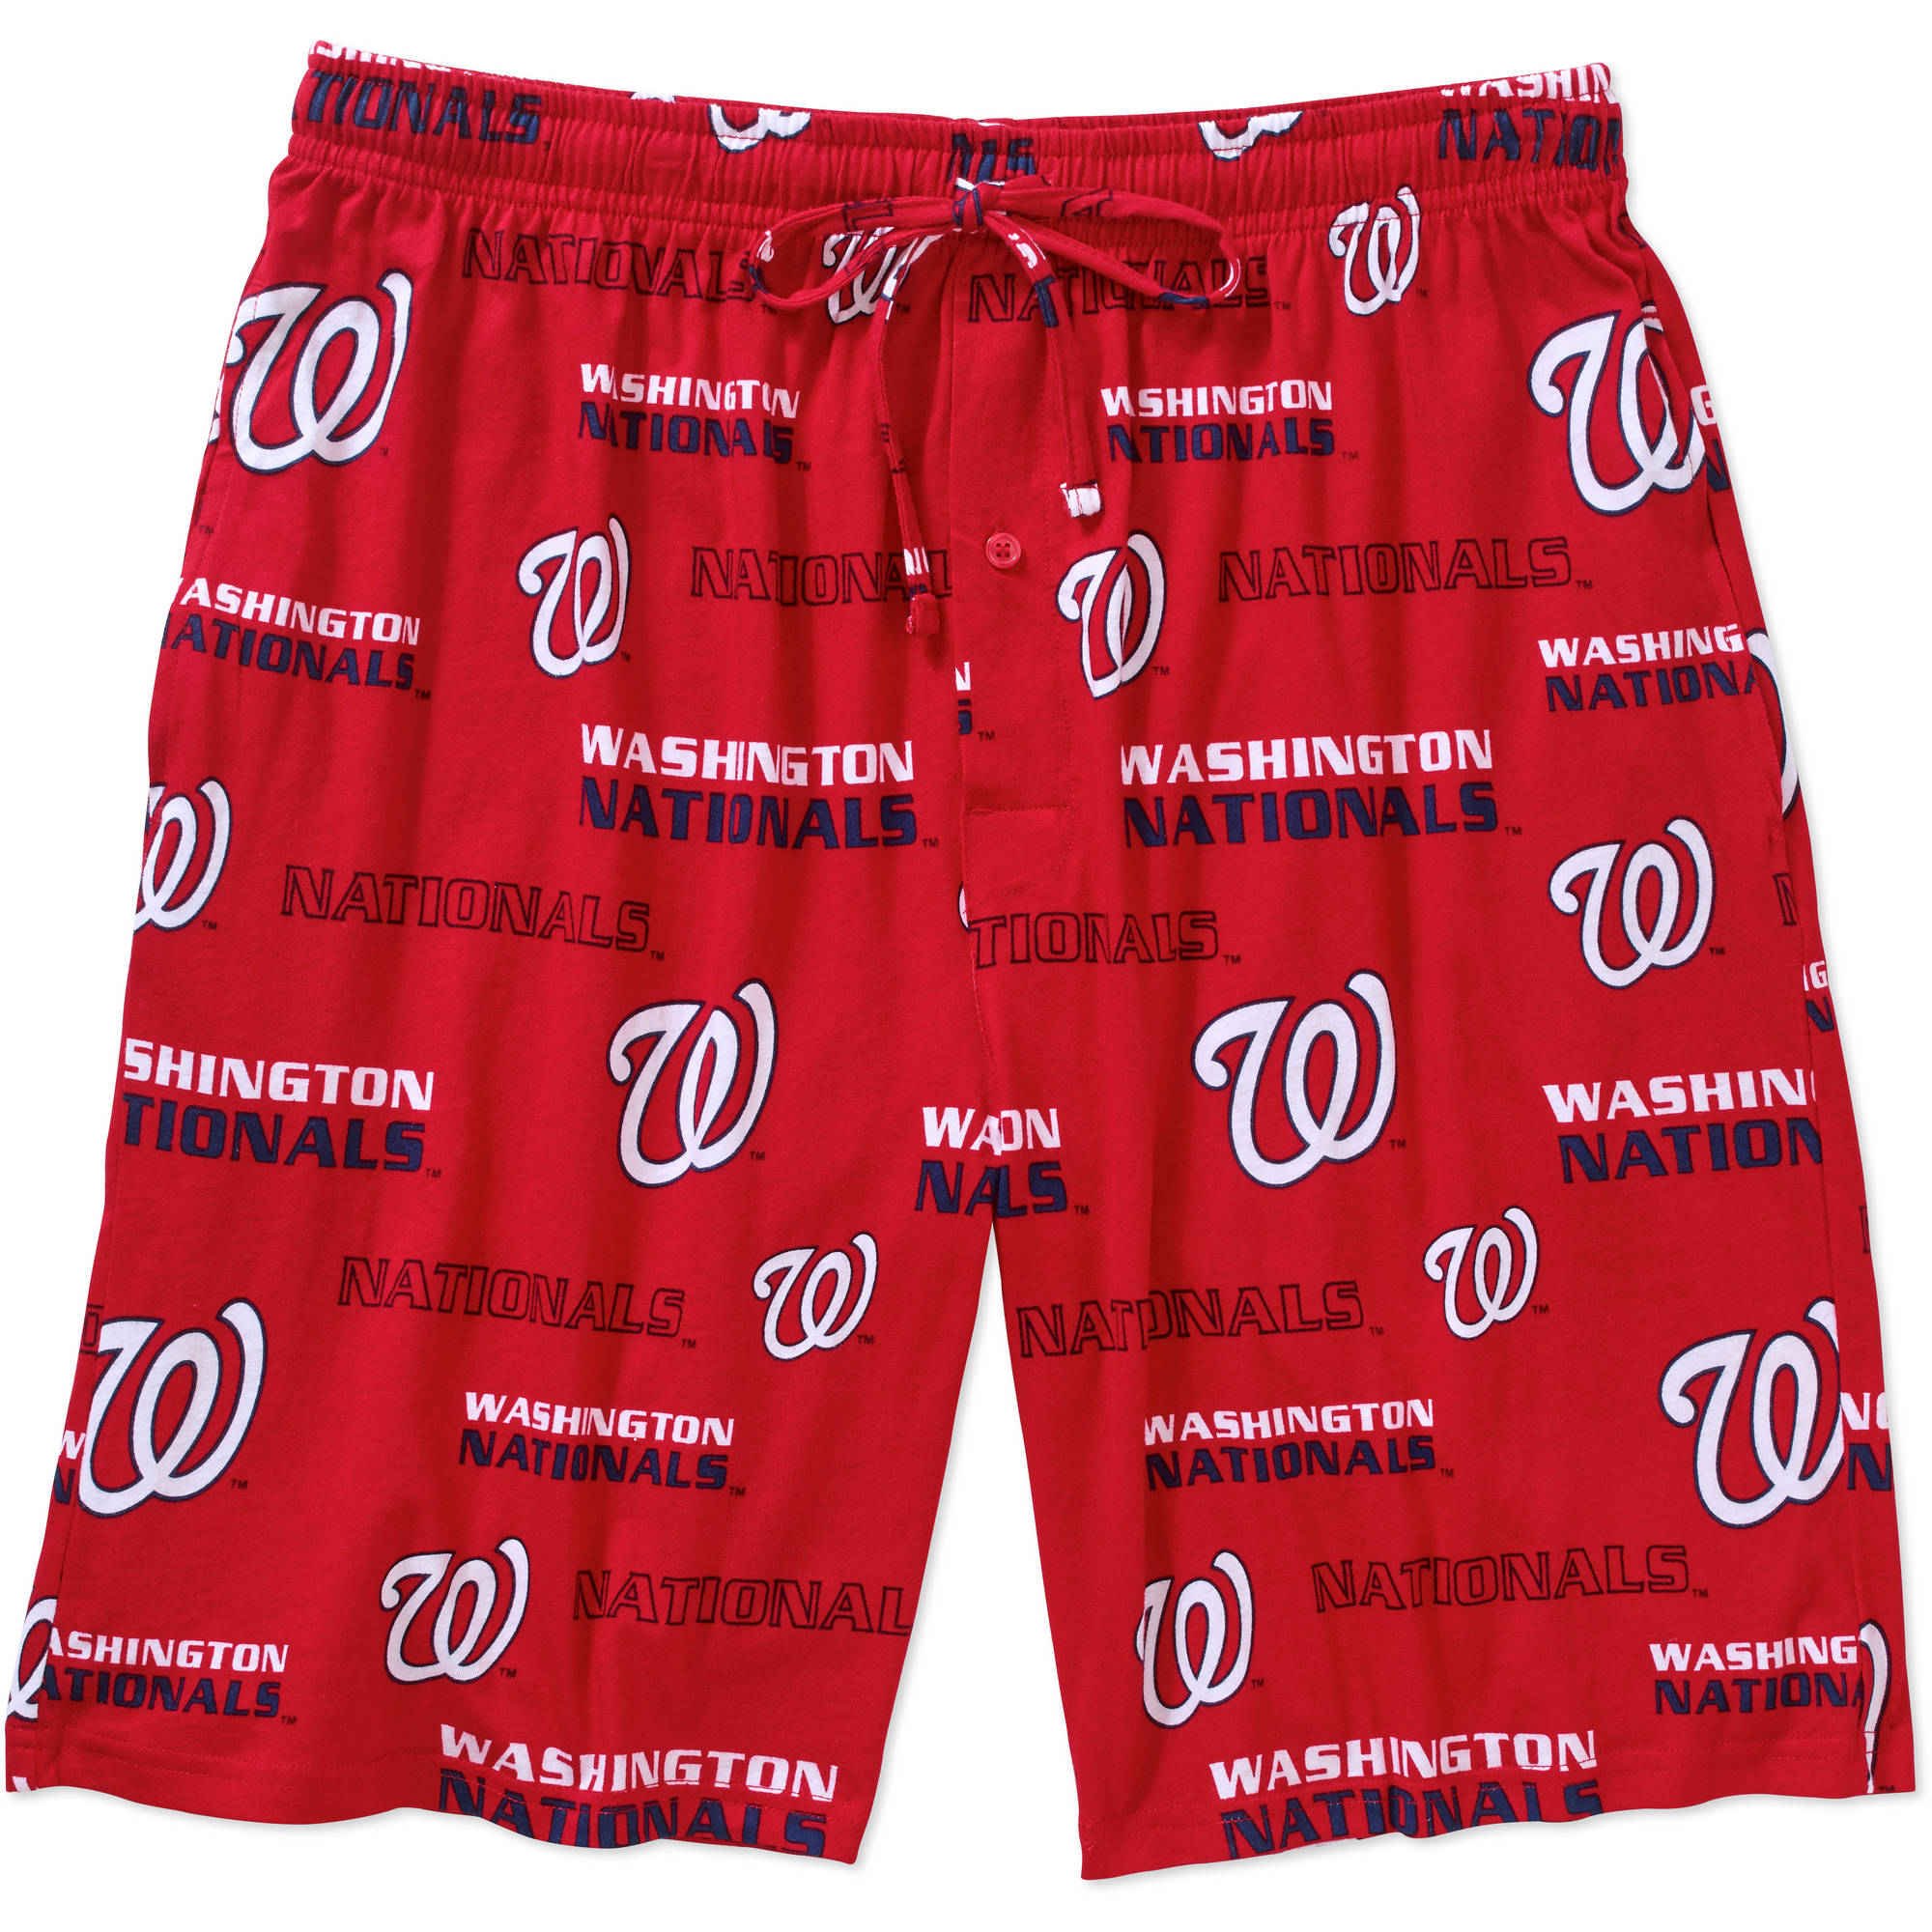 MLB Men's Washington Nationals Knit Jam Shorts